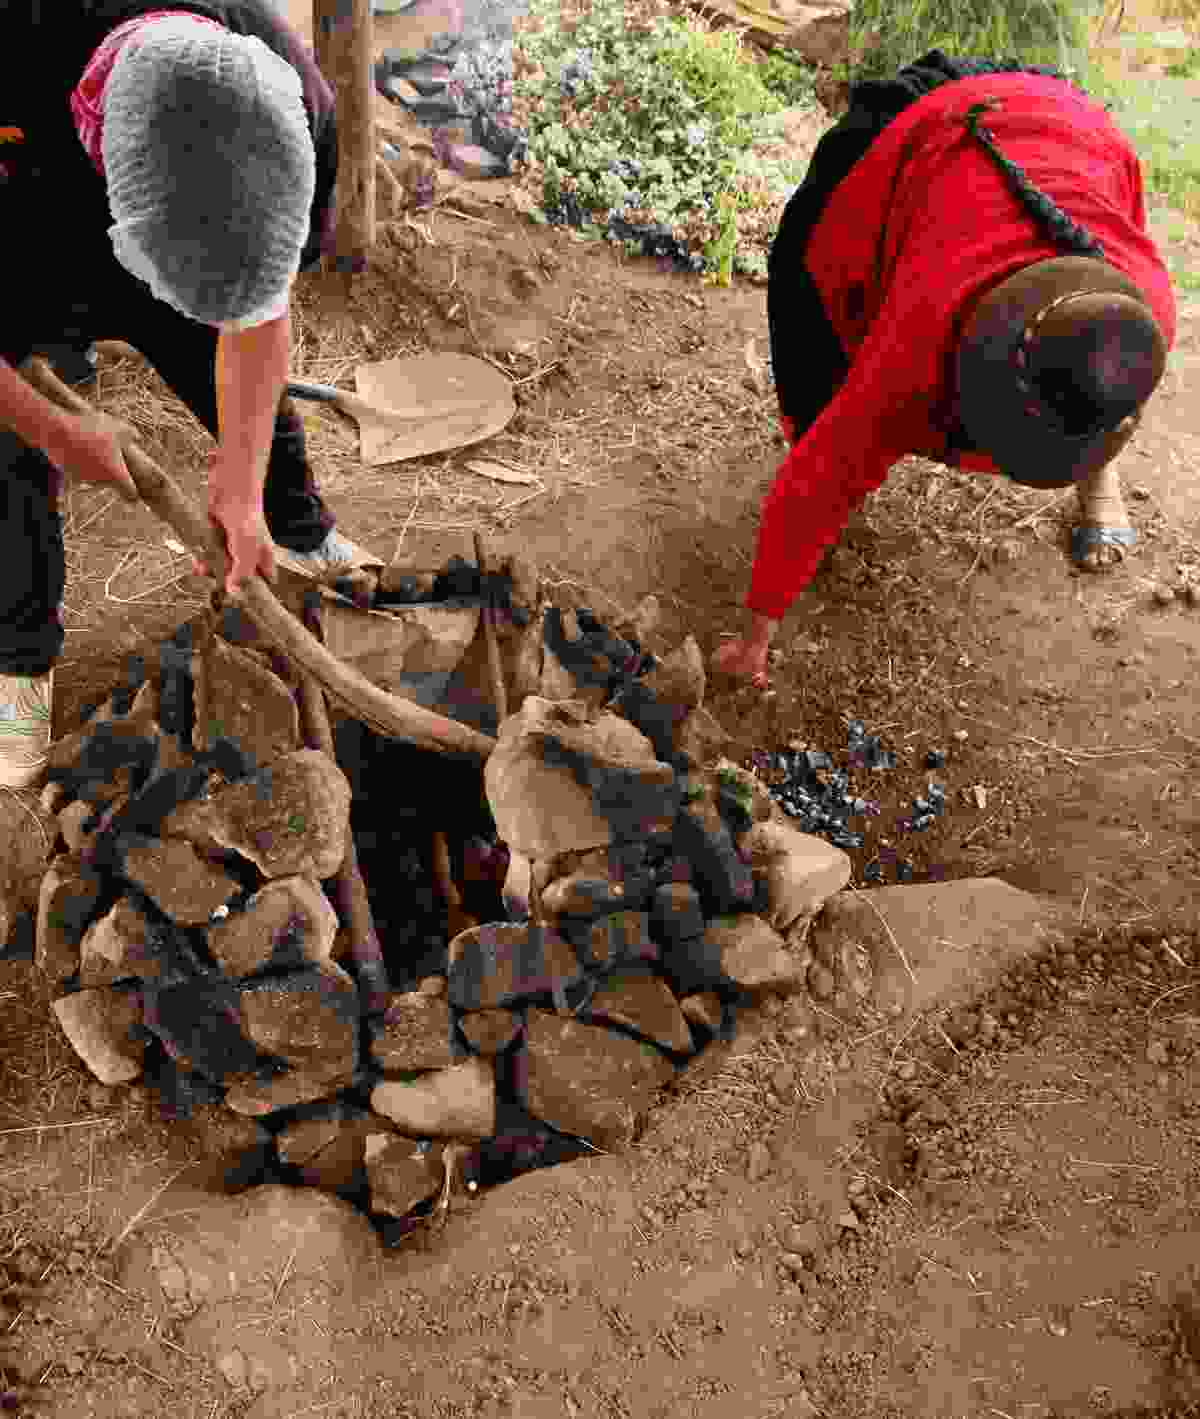 Ingredients for a pachamanca feast are buried in a pit with heated stones (Paul Bloomfield)